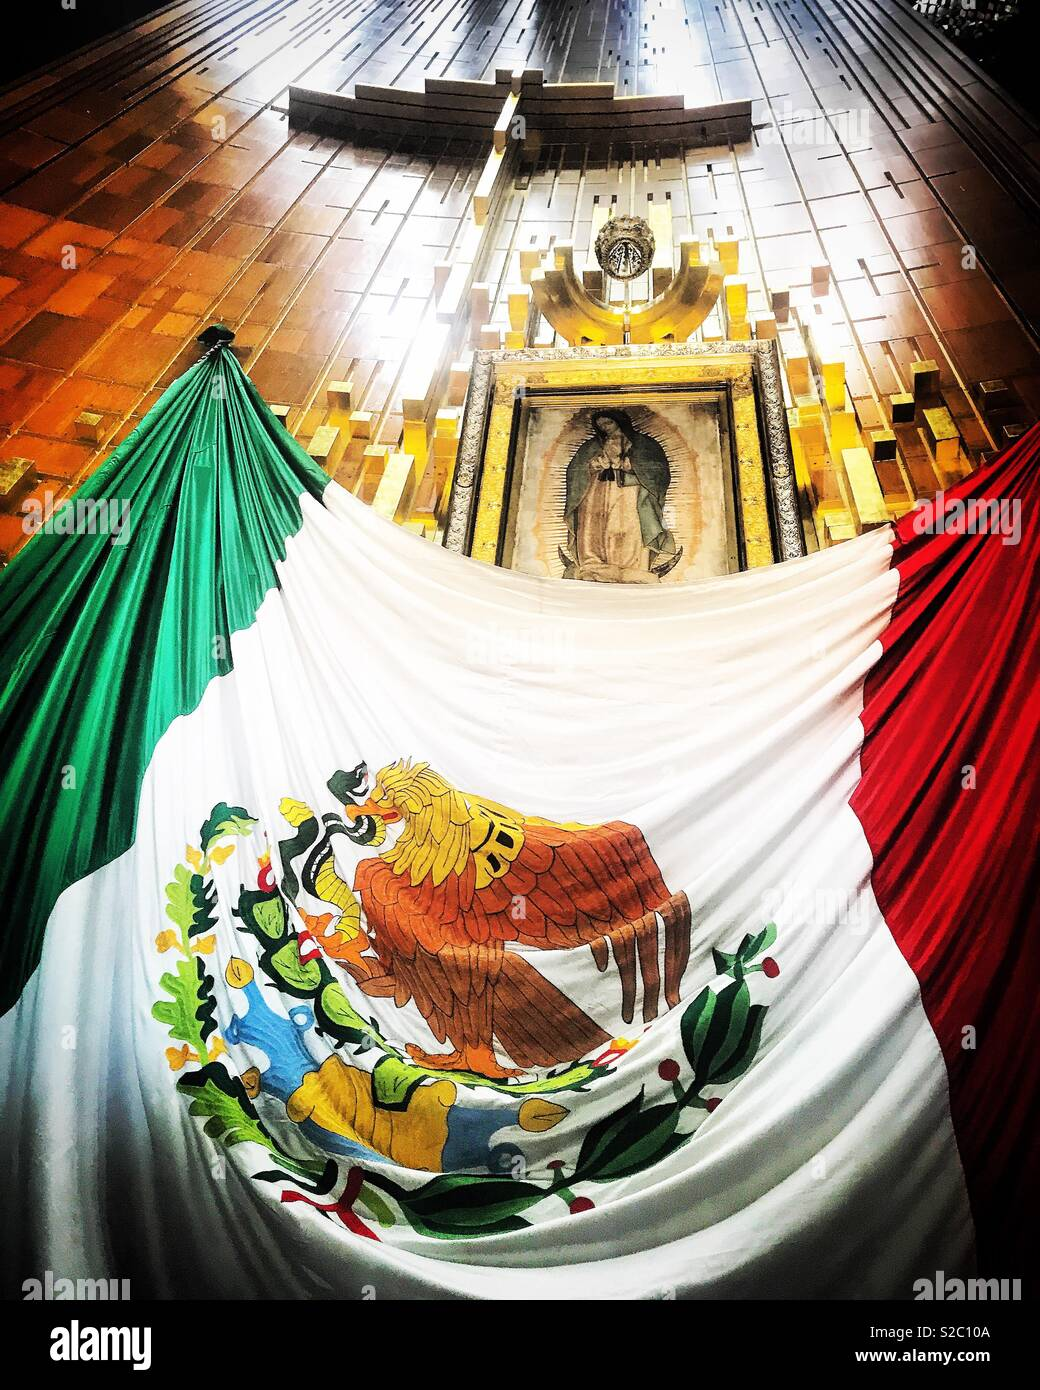 The Mexican flag covers the altar of Our Lady of Guadalupe in Mexico City, Mexico - Stock Image